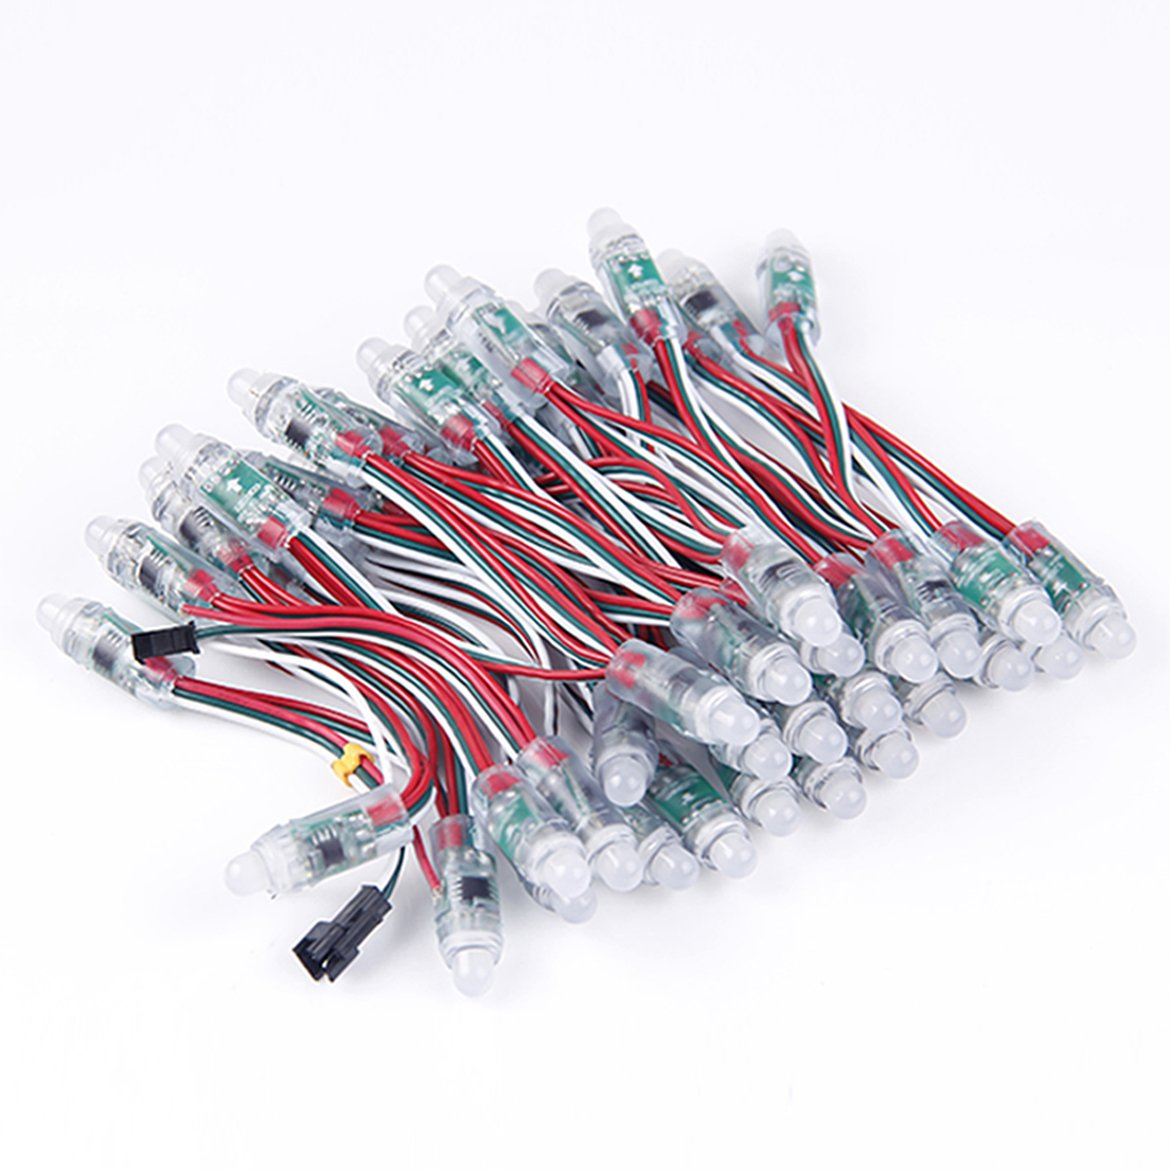 Neopixel String Wiring Block And Schematic Diagrams Adafruit Digital Rgb Led Strip White 60 Id 50pcs Ws2811 Full Color 12mm Pixels Addressable Rh Amazon Co Uk